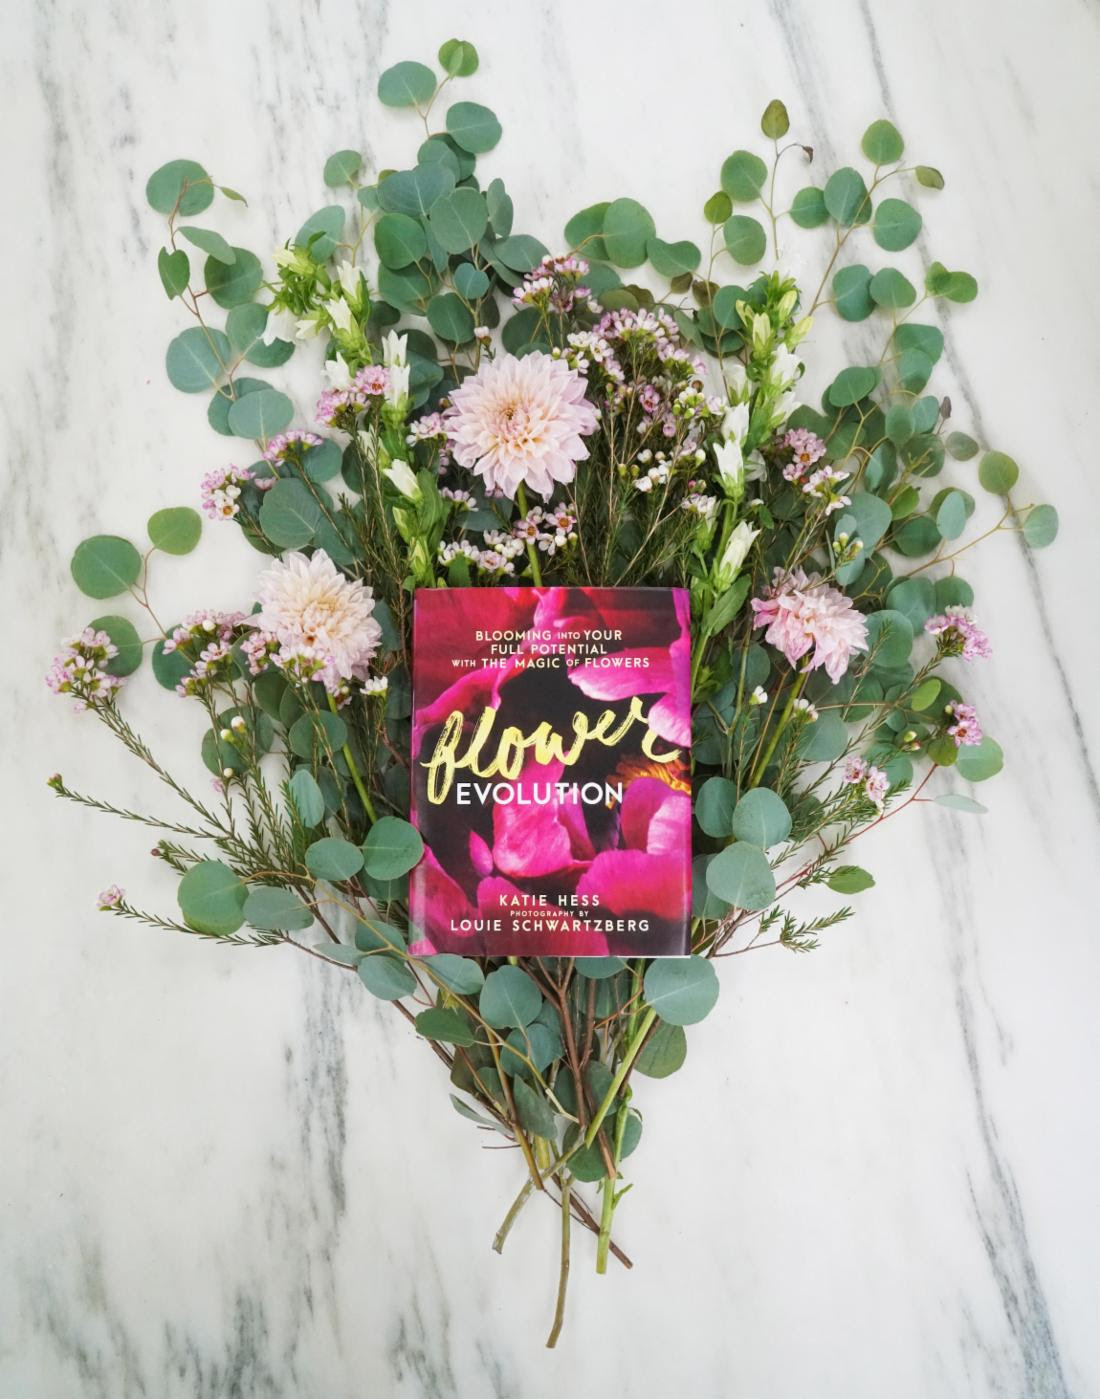 Bloom Into Your Full Potential With Flowerevolution Ni Hao New York